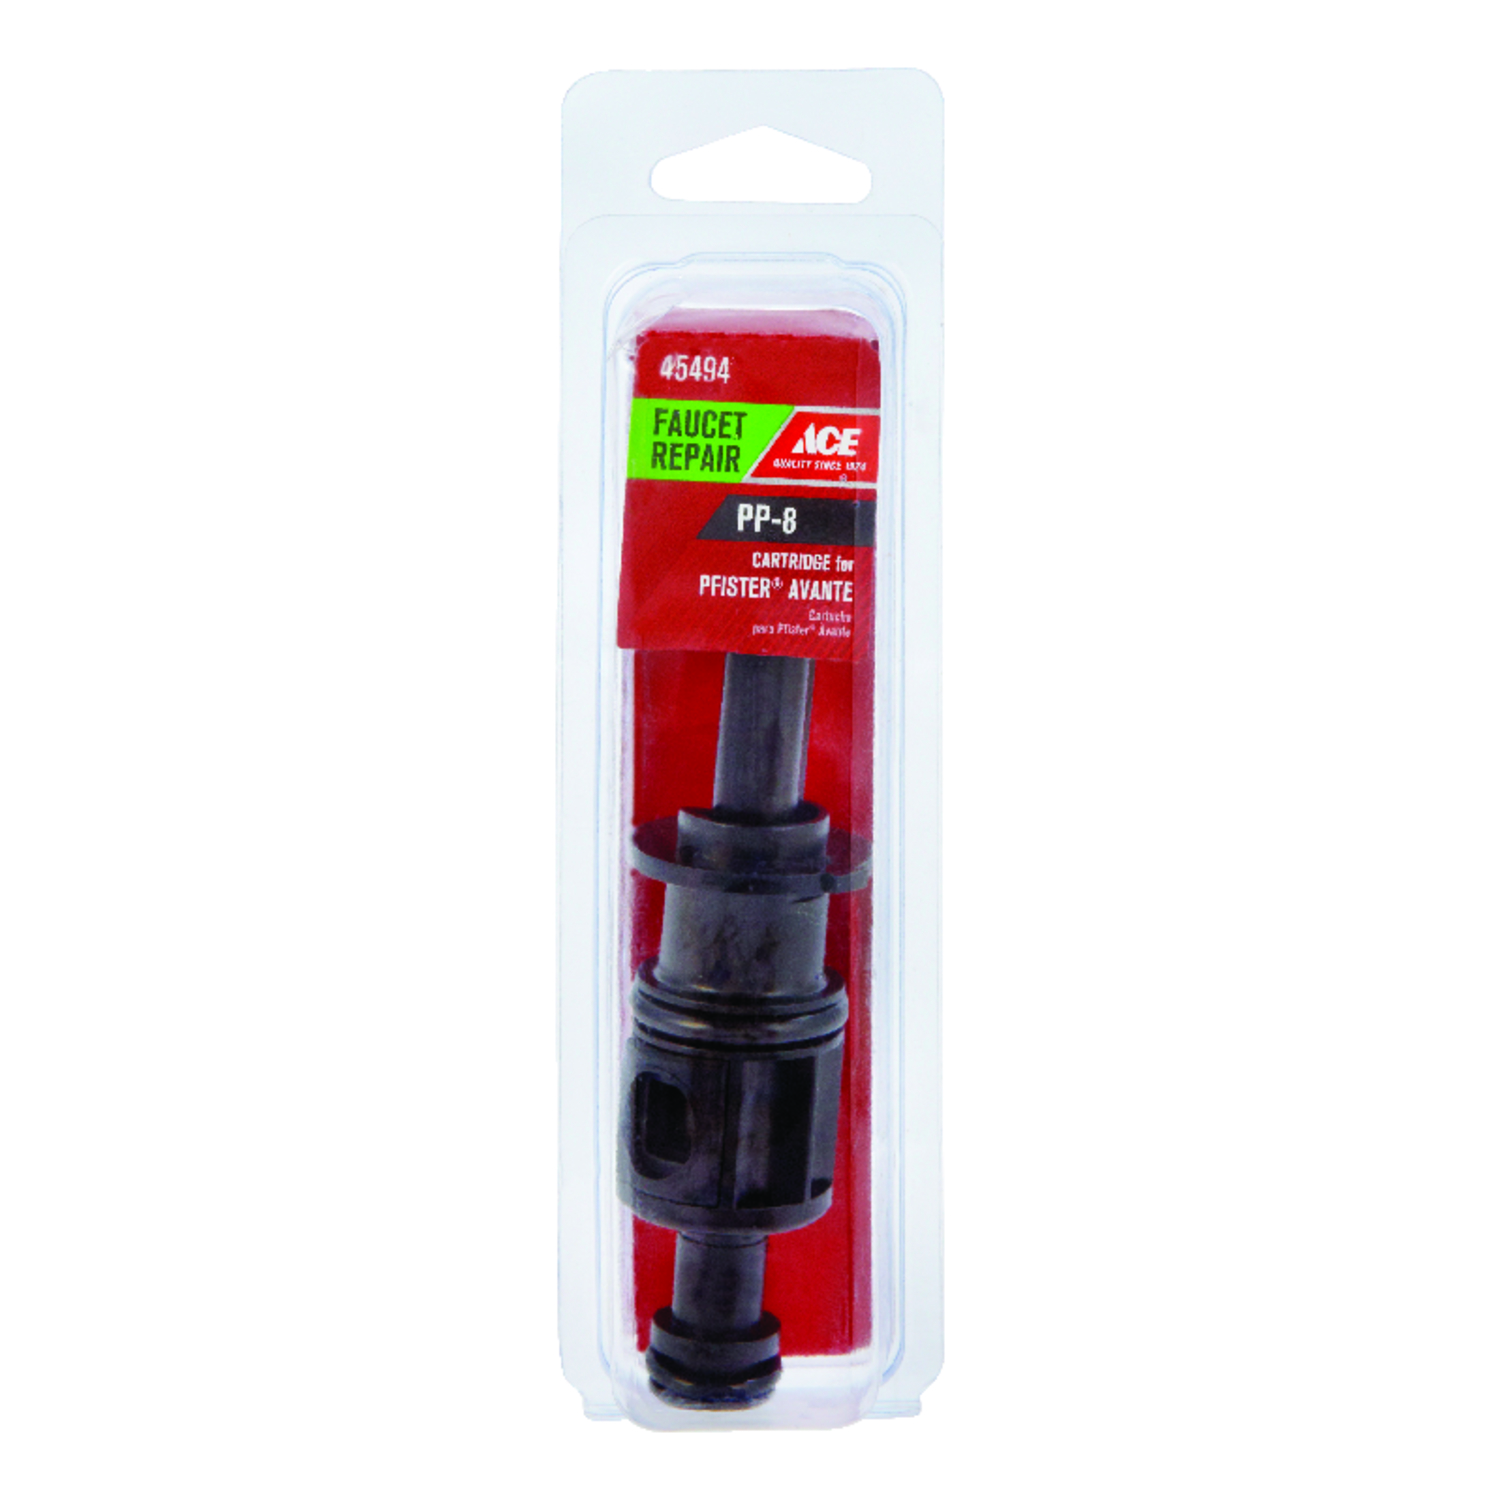 Ace Hot And Cold Pp 8 Faucet Cartridge For Price Pfister